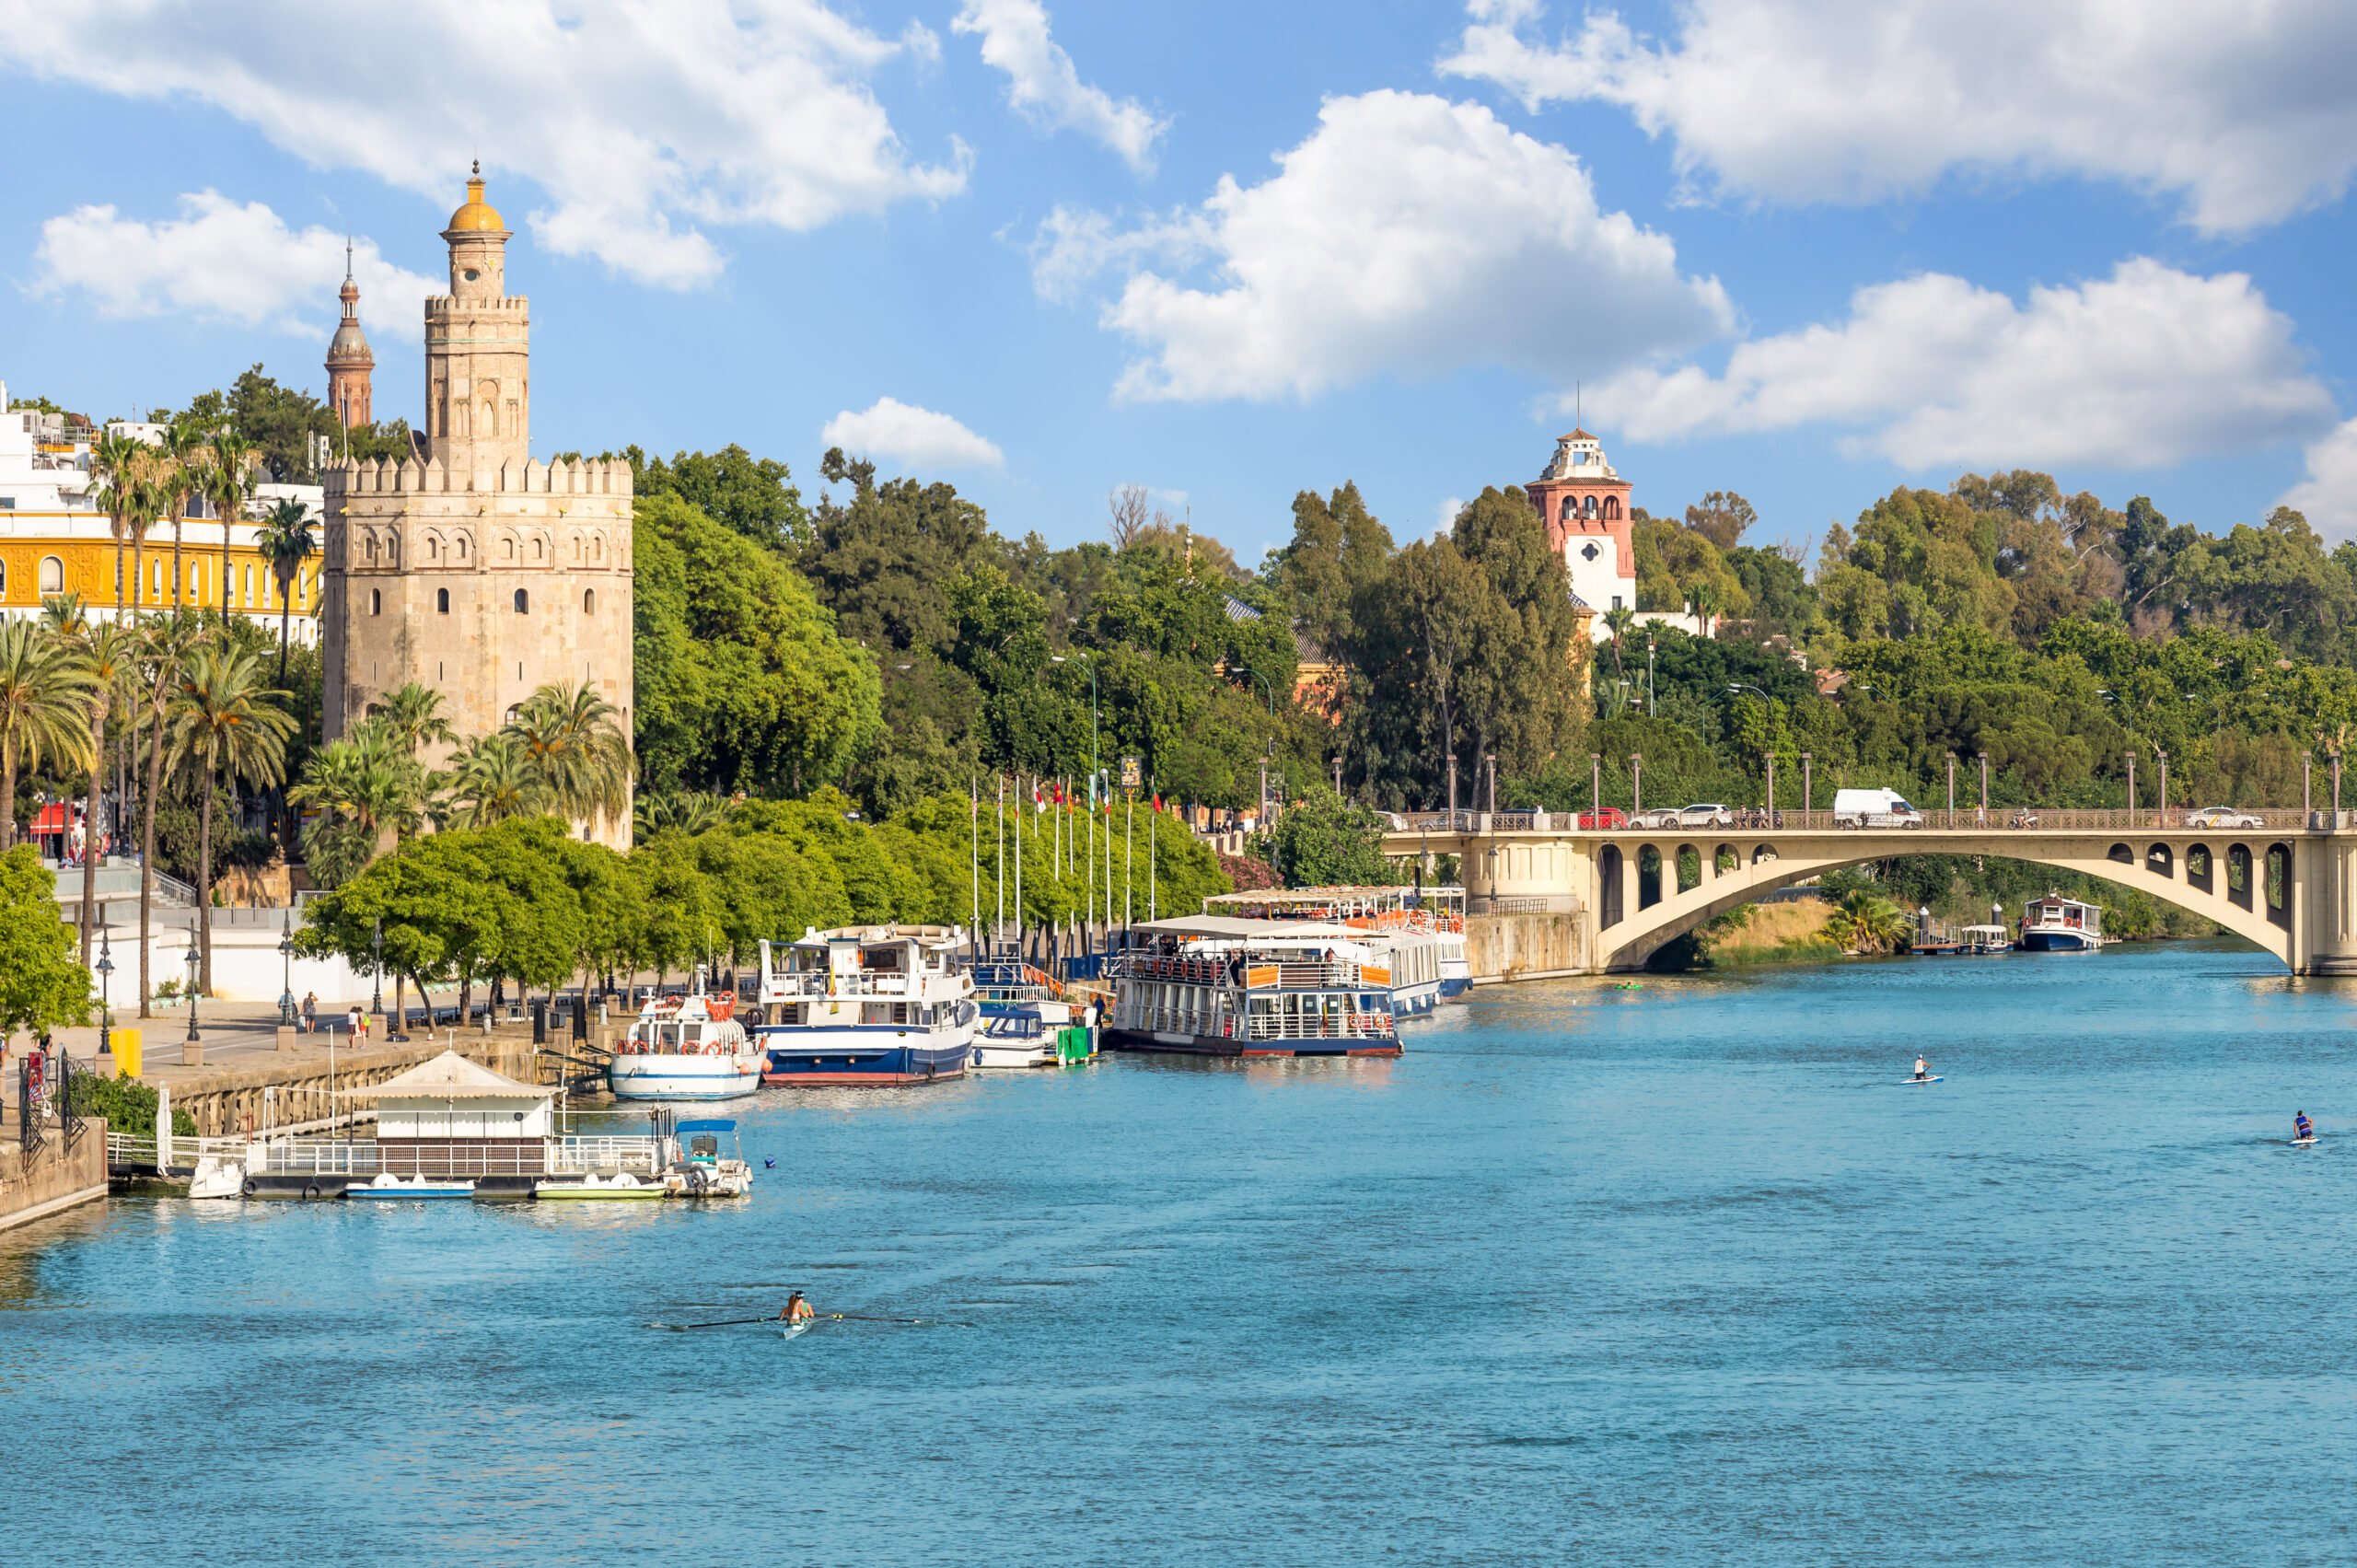 Discover The Beauty Of Seville On The Insider Seville City Tour